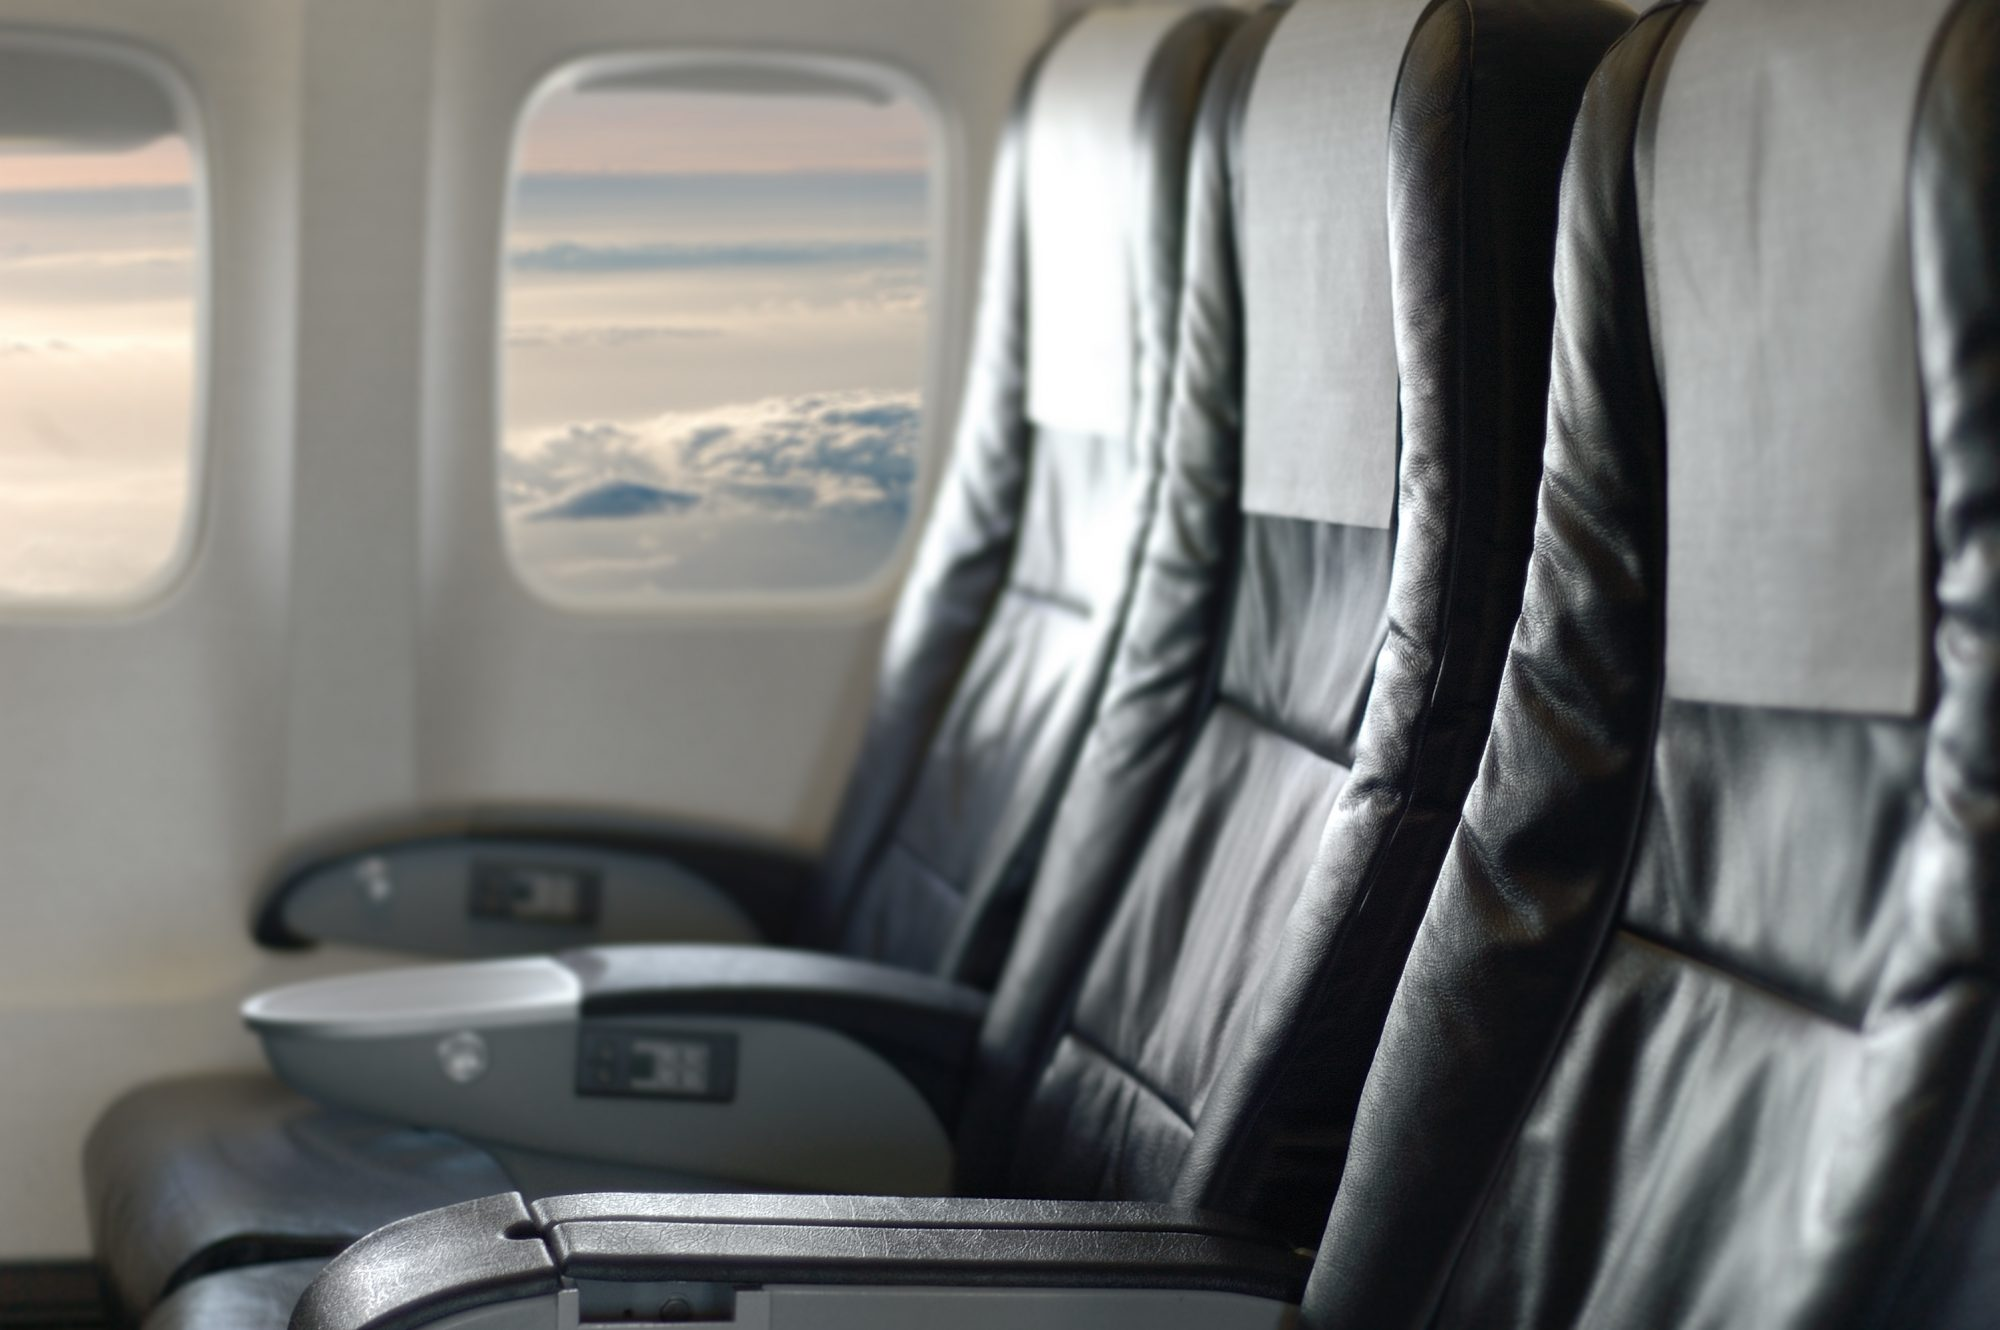 5 of the Filthiest Places to Avoid on Airplanes